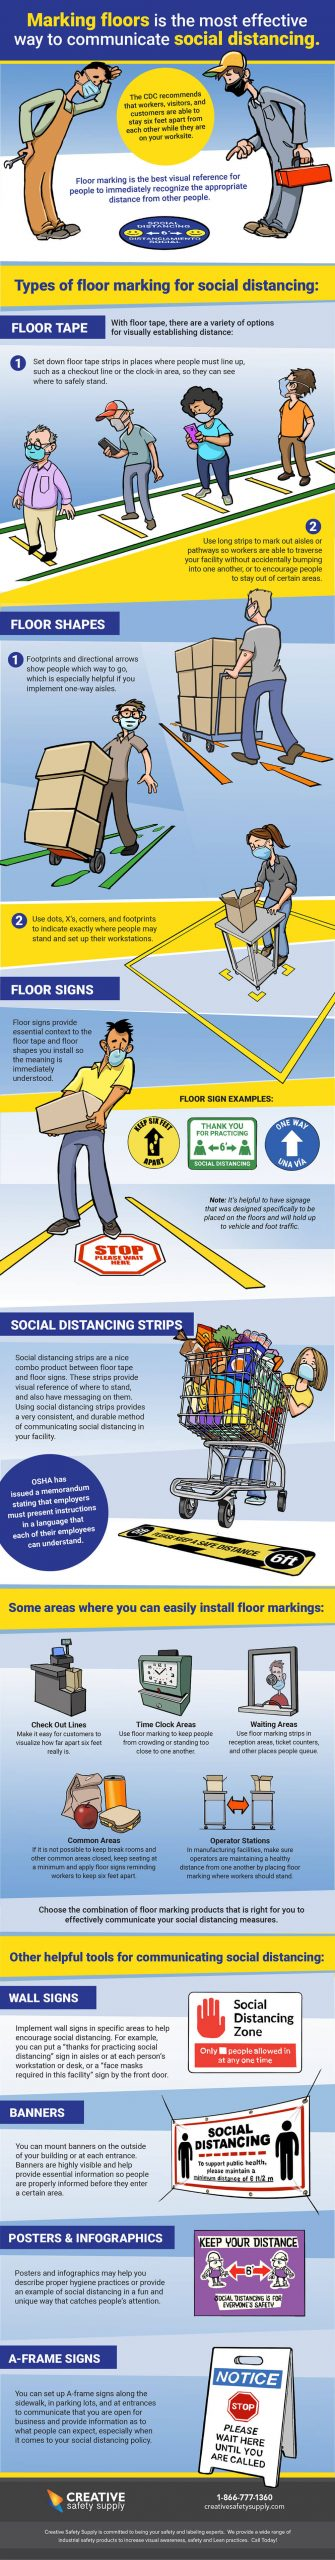 Infographic for how to mark floors for social distancing